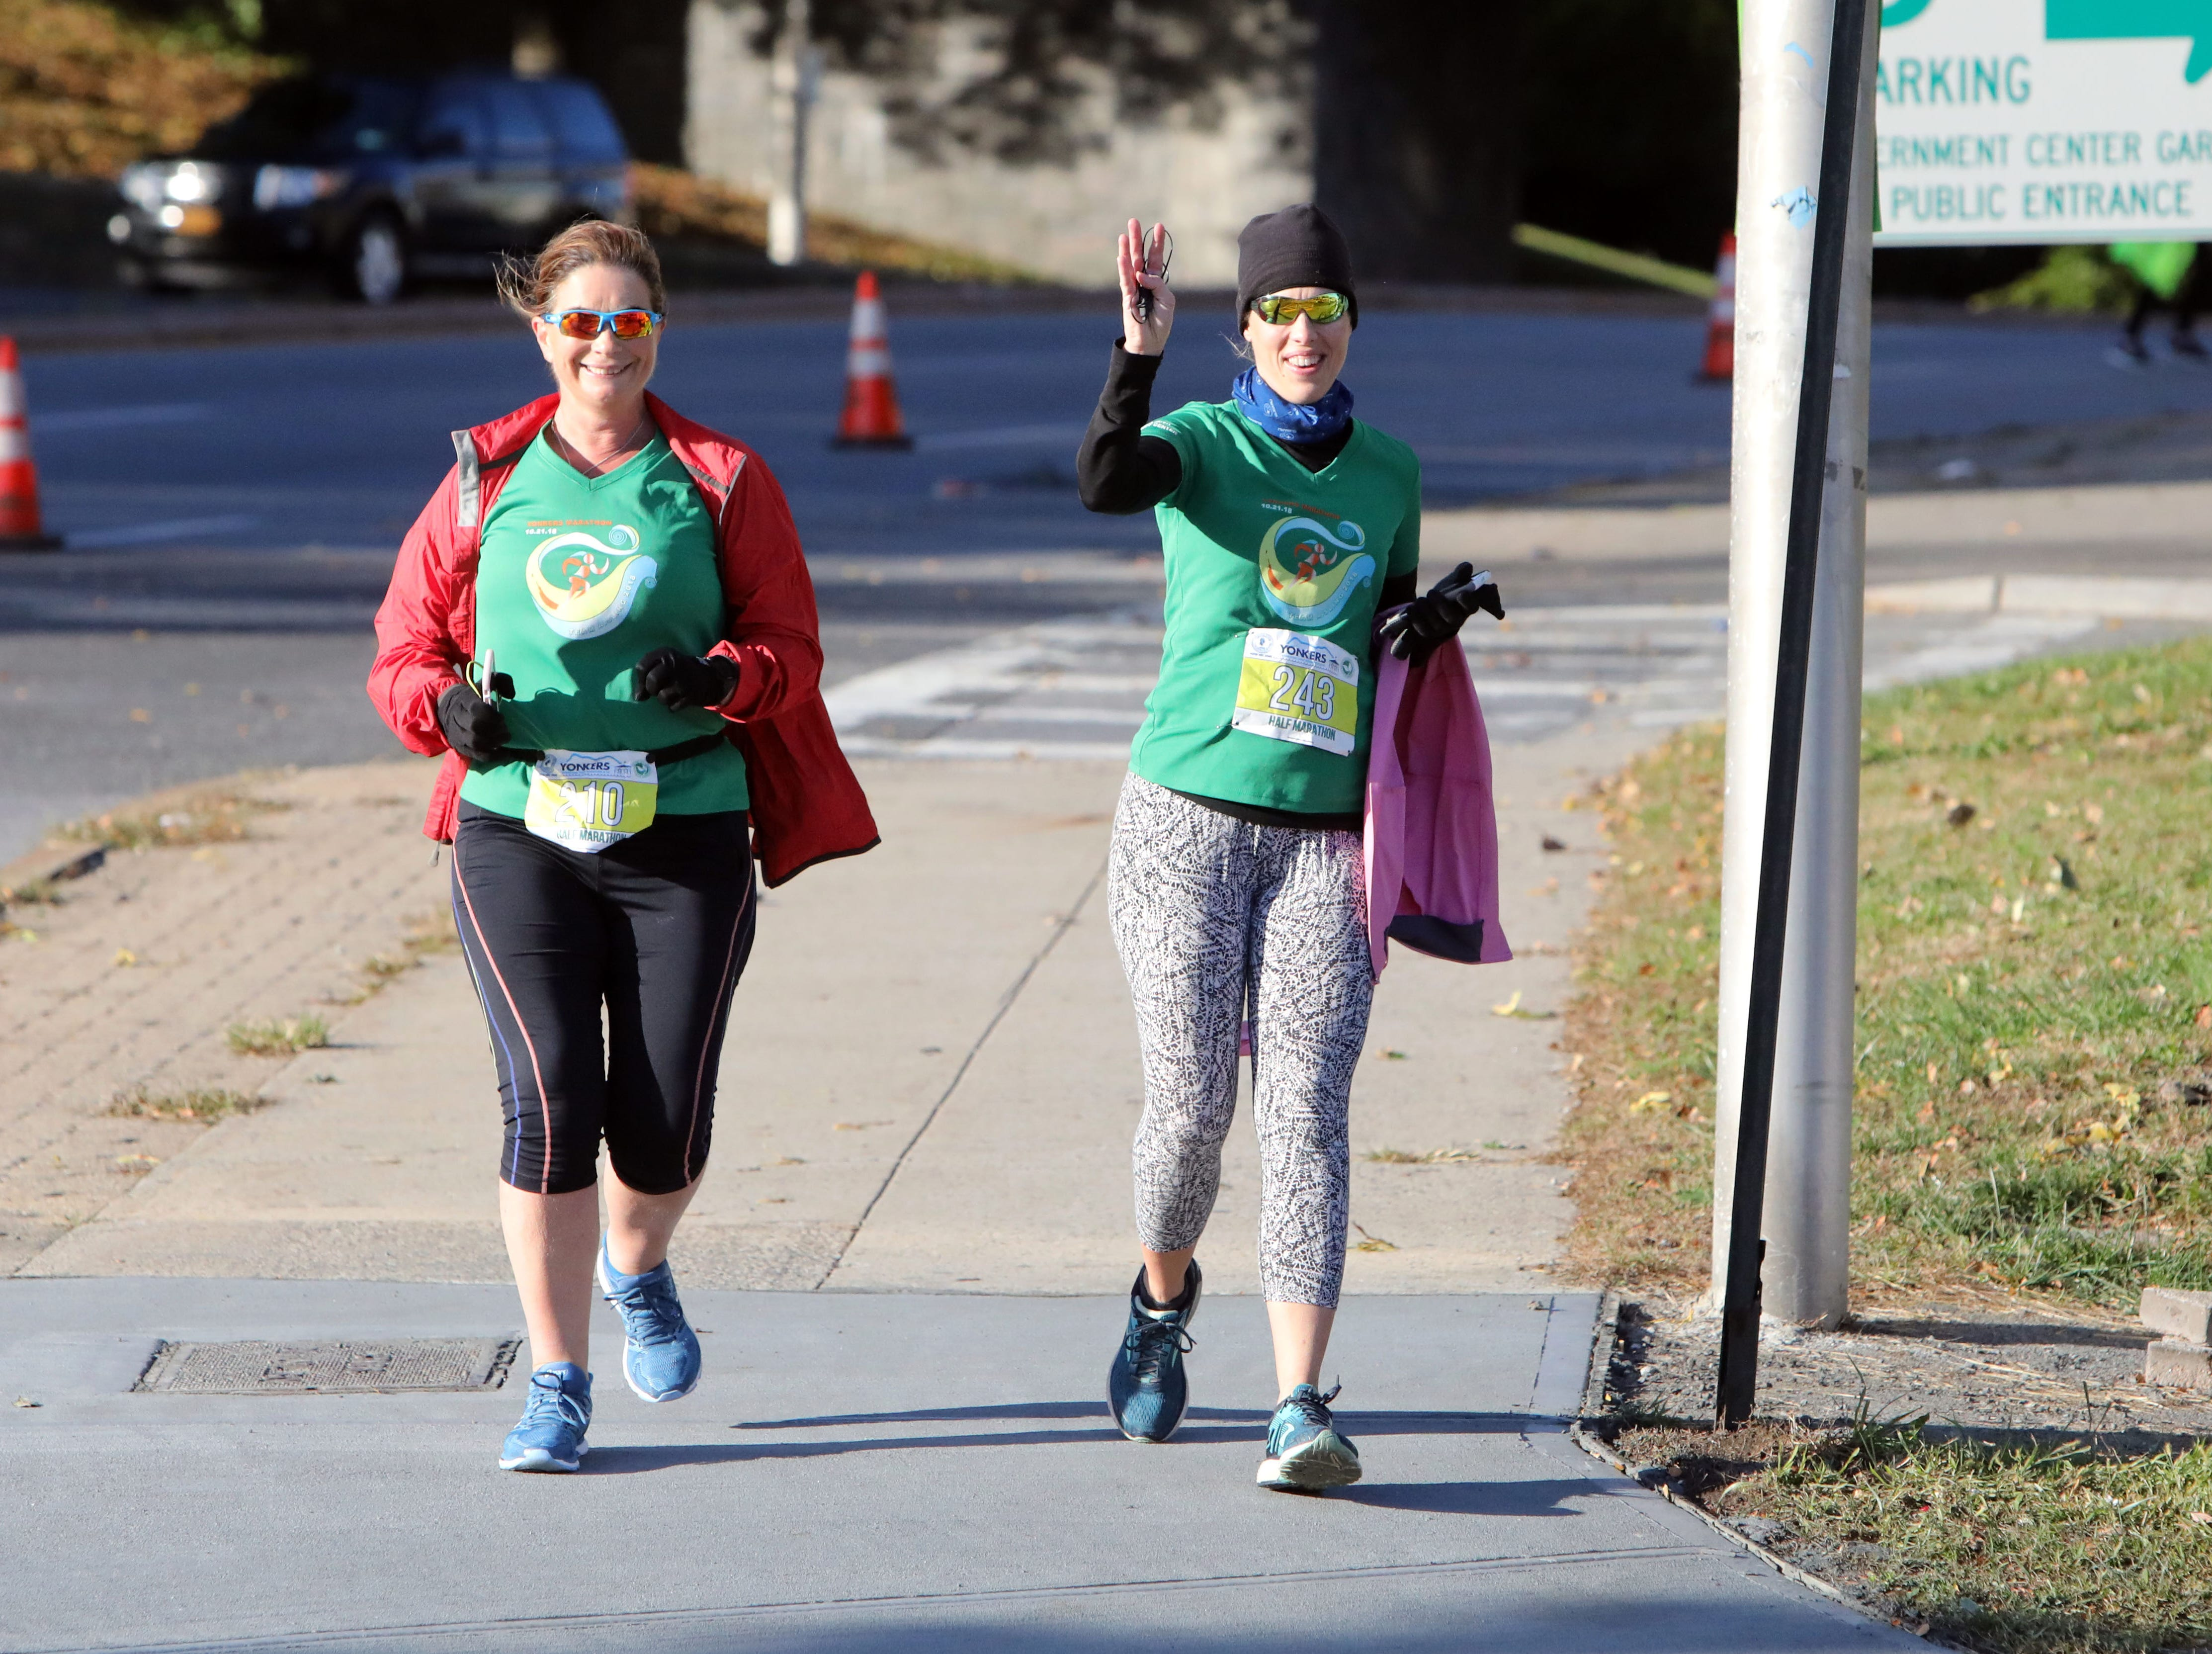 Mary Quinn - Mc Aleer, left, and Wendy O'Reilly, both of Pearl River, run with Team Aisling in the Yonkers Marathon, half marathon and 5k, Oct. 21, 2018.